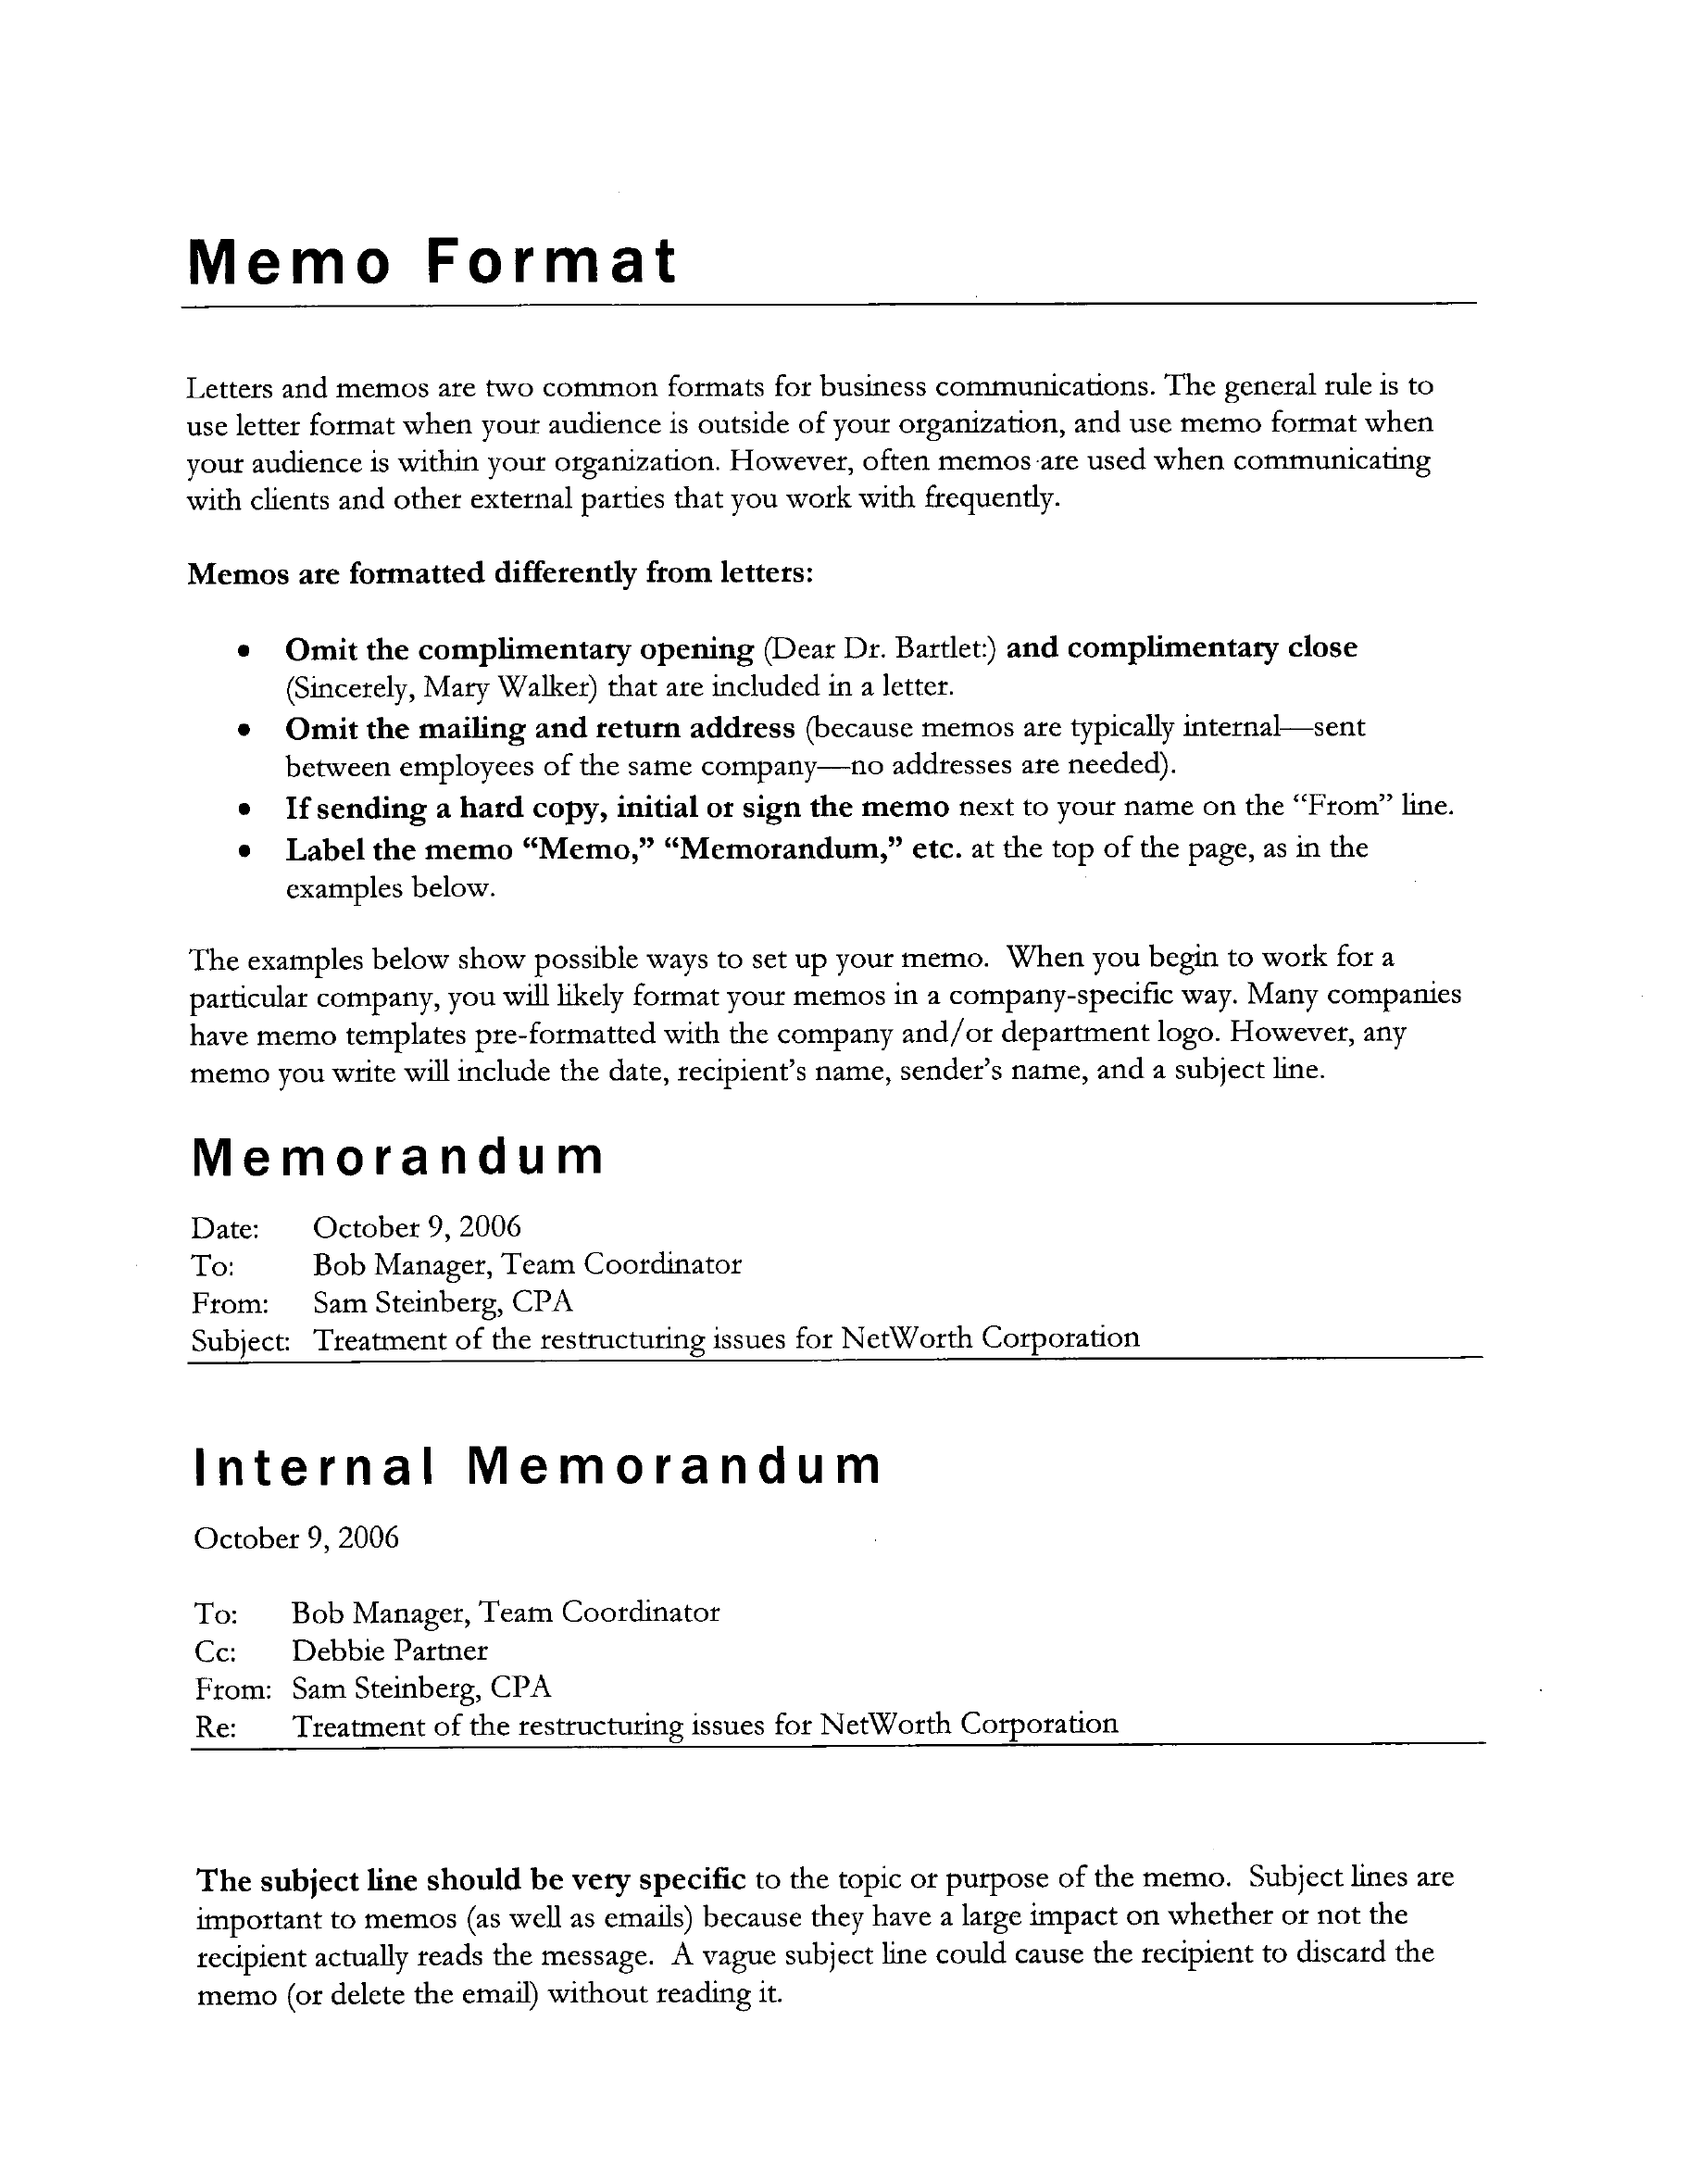 Memo Format Free Download Bg1 Free Memo Format Interoffice Memo Samples  Interoffice Memo Samples  Interoffice Memorandum Format